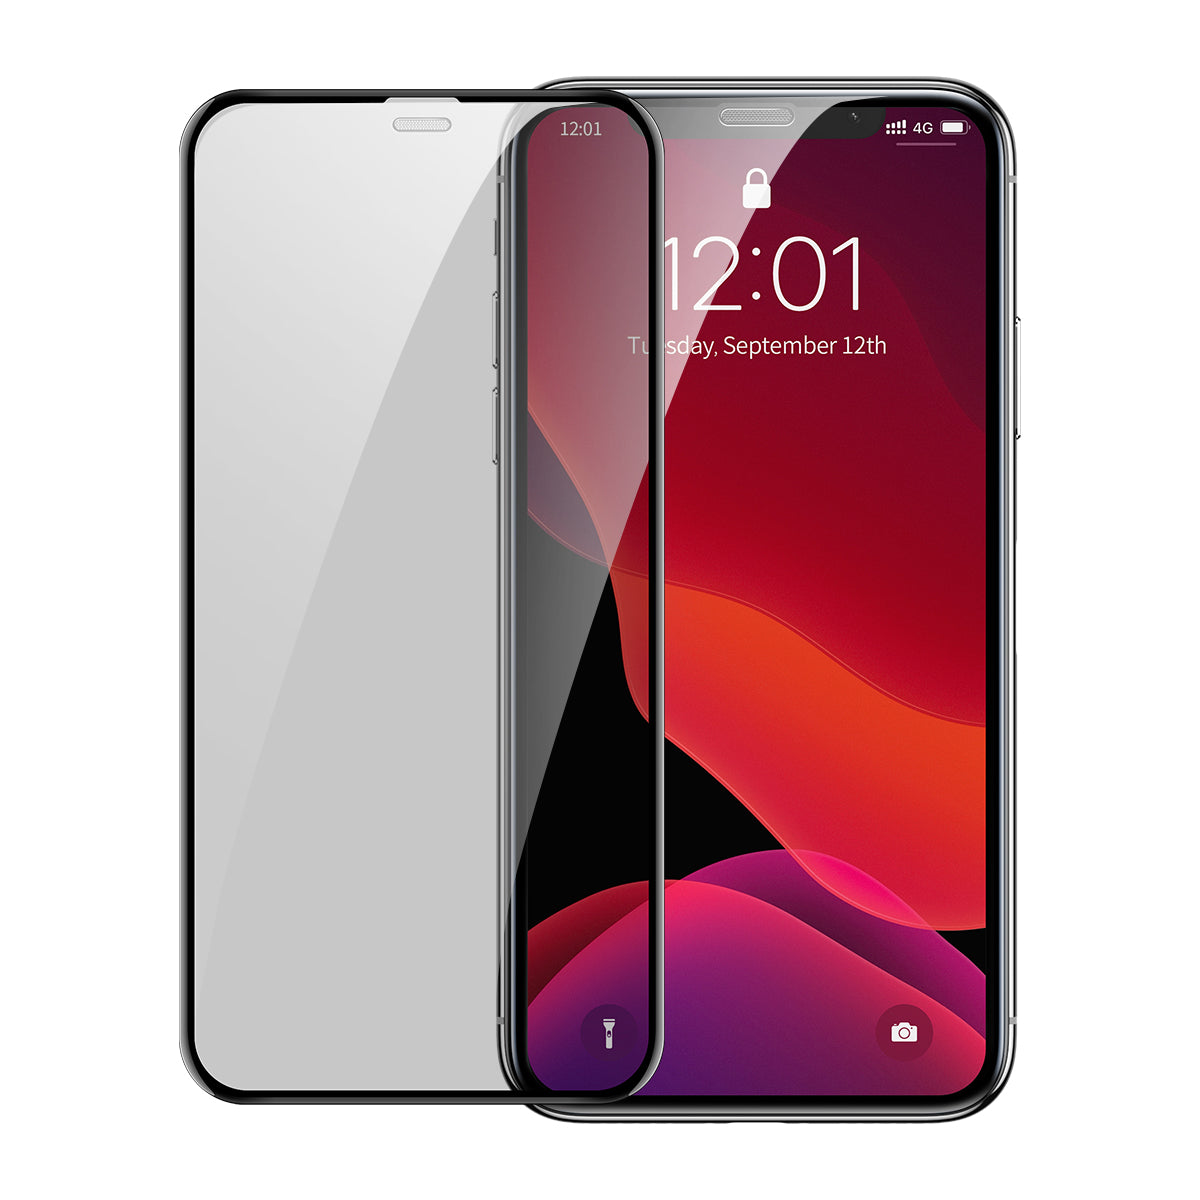 BASEUS Full-screen Curved Privacy Tempered Glass Film (Cellular Dust Prevention) (2pcs) for iPhone 11 Pro Max / 11 Pro / 11 / XS Max / XS / X / XR